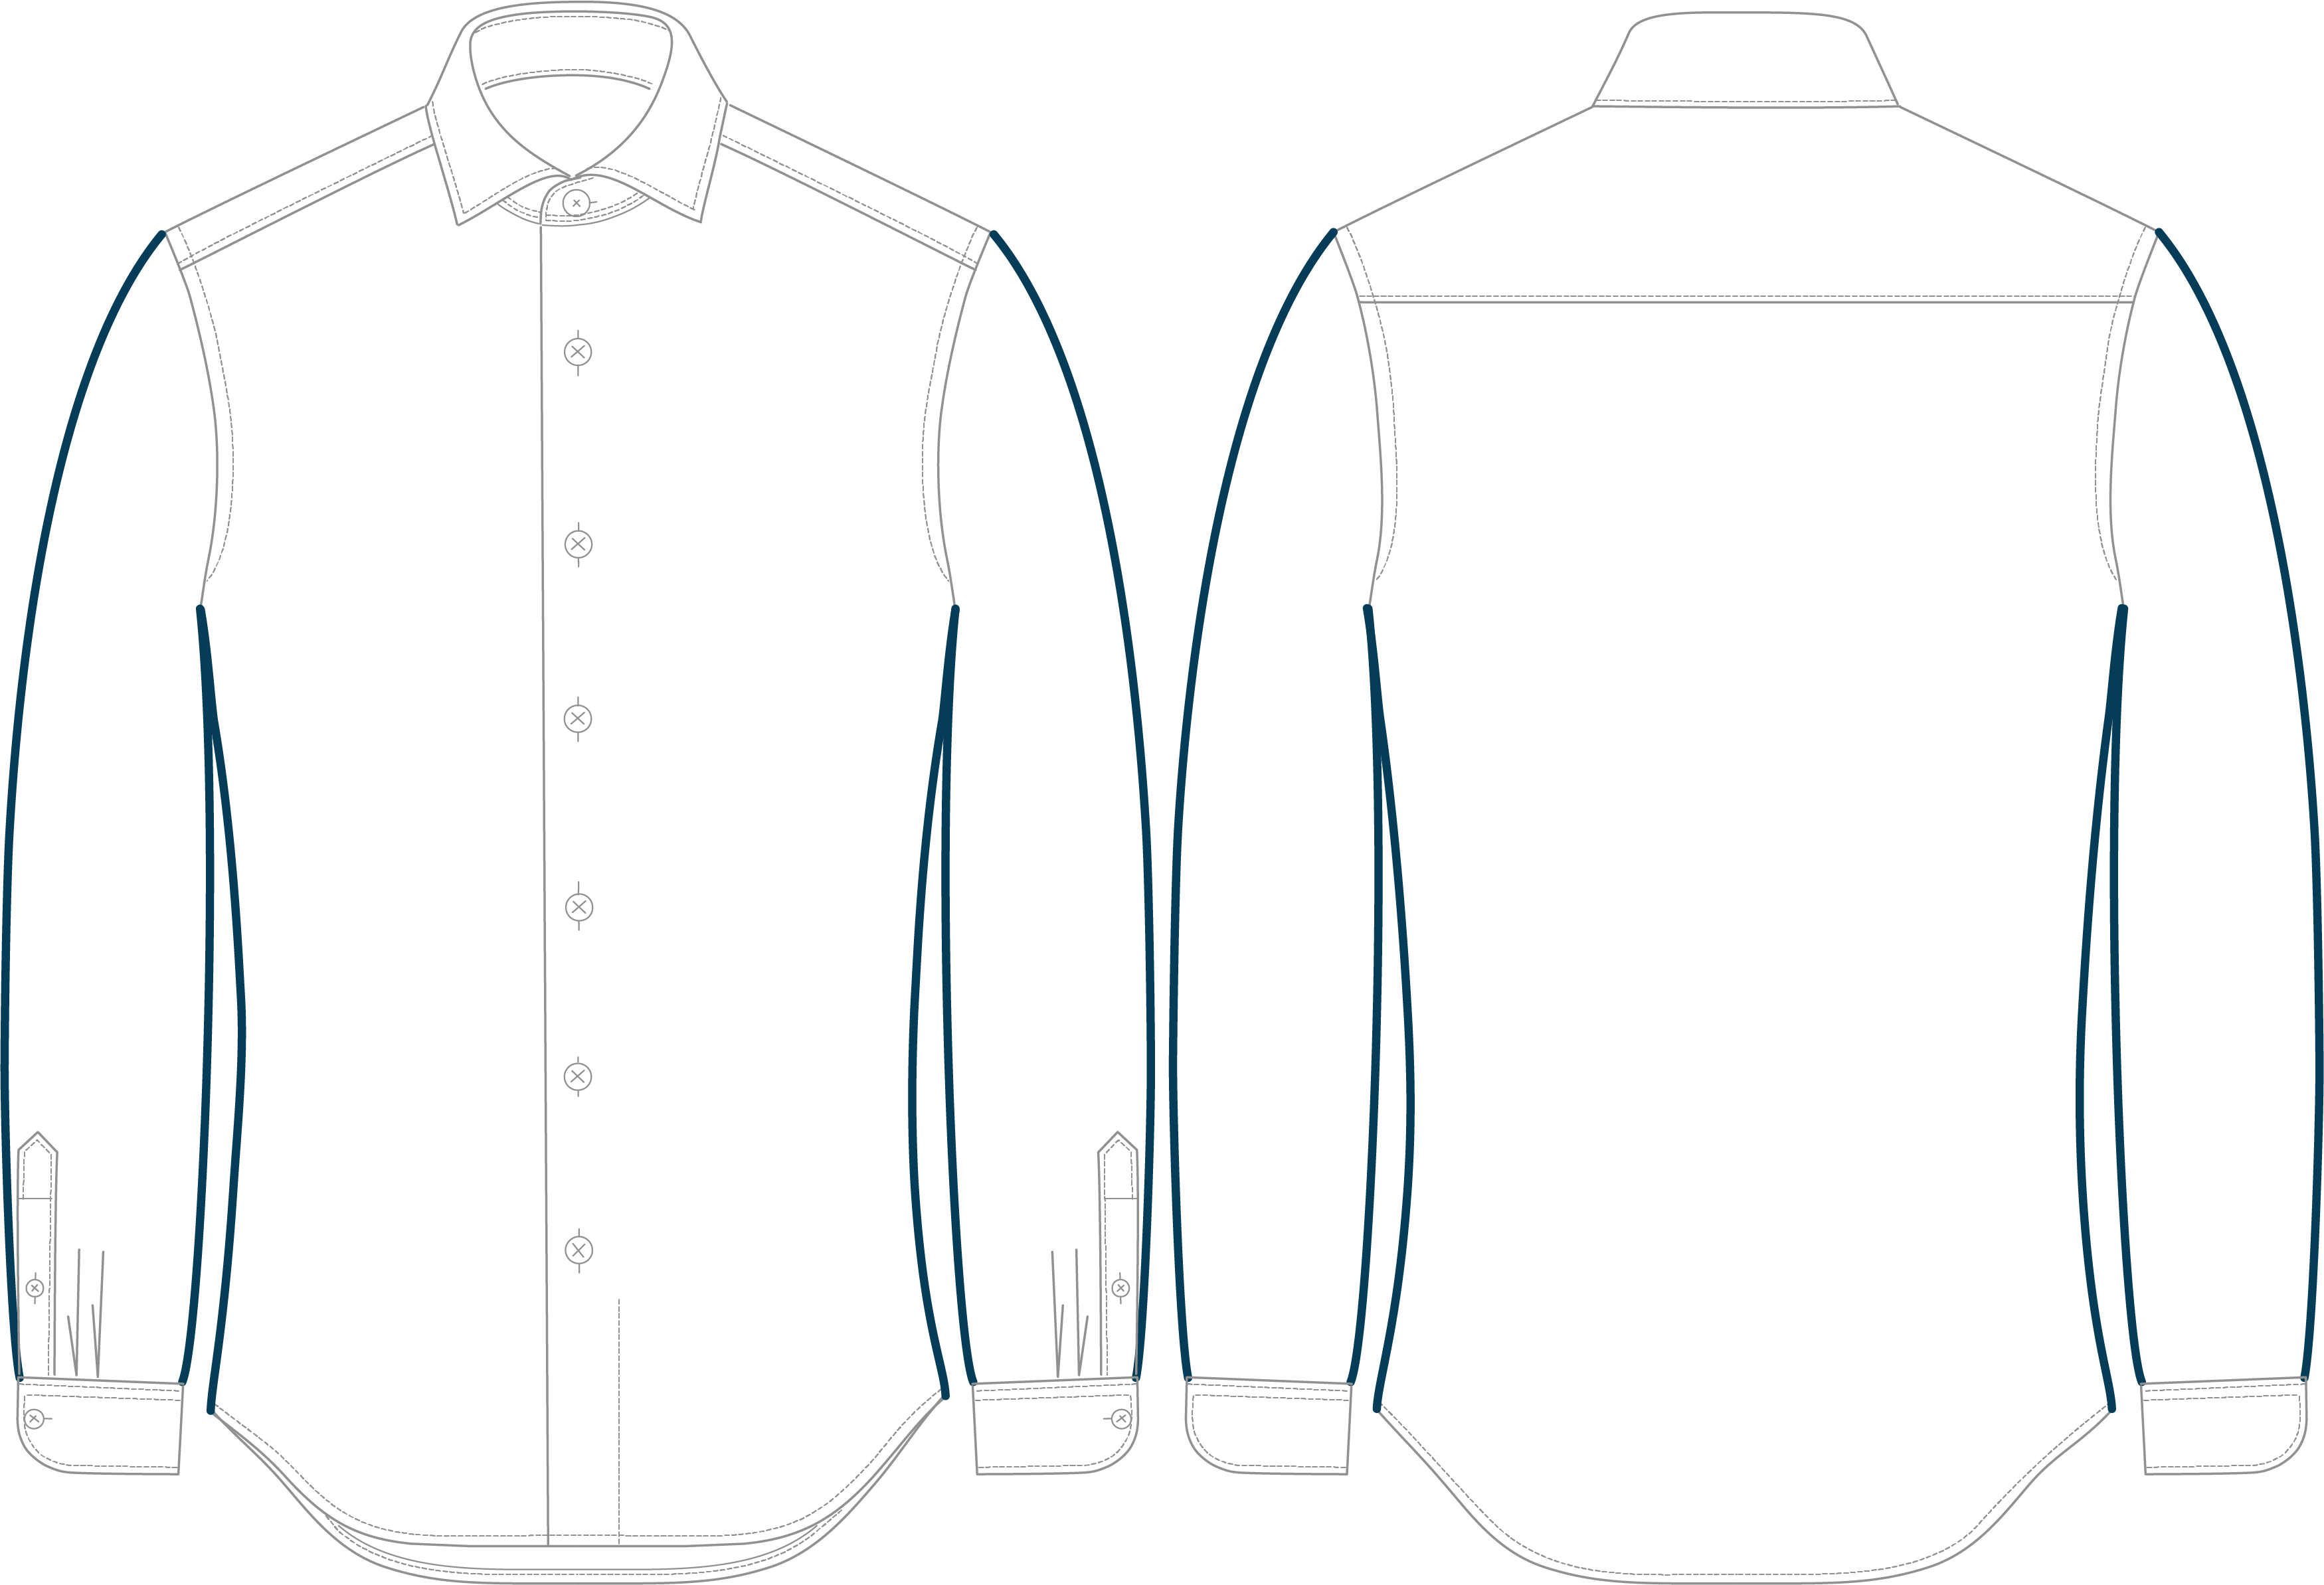 Very slim fit dress shirt with emphasis on short arms and body length